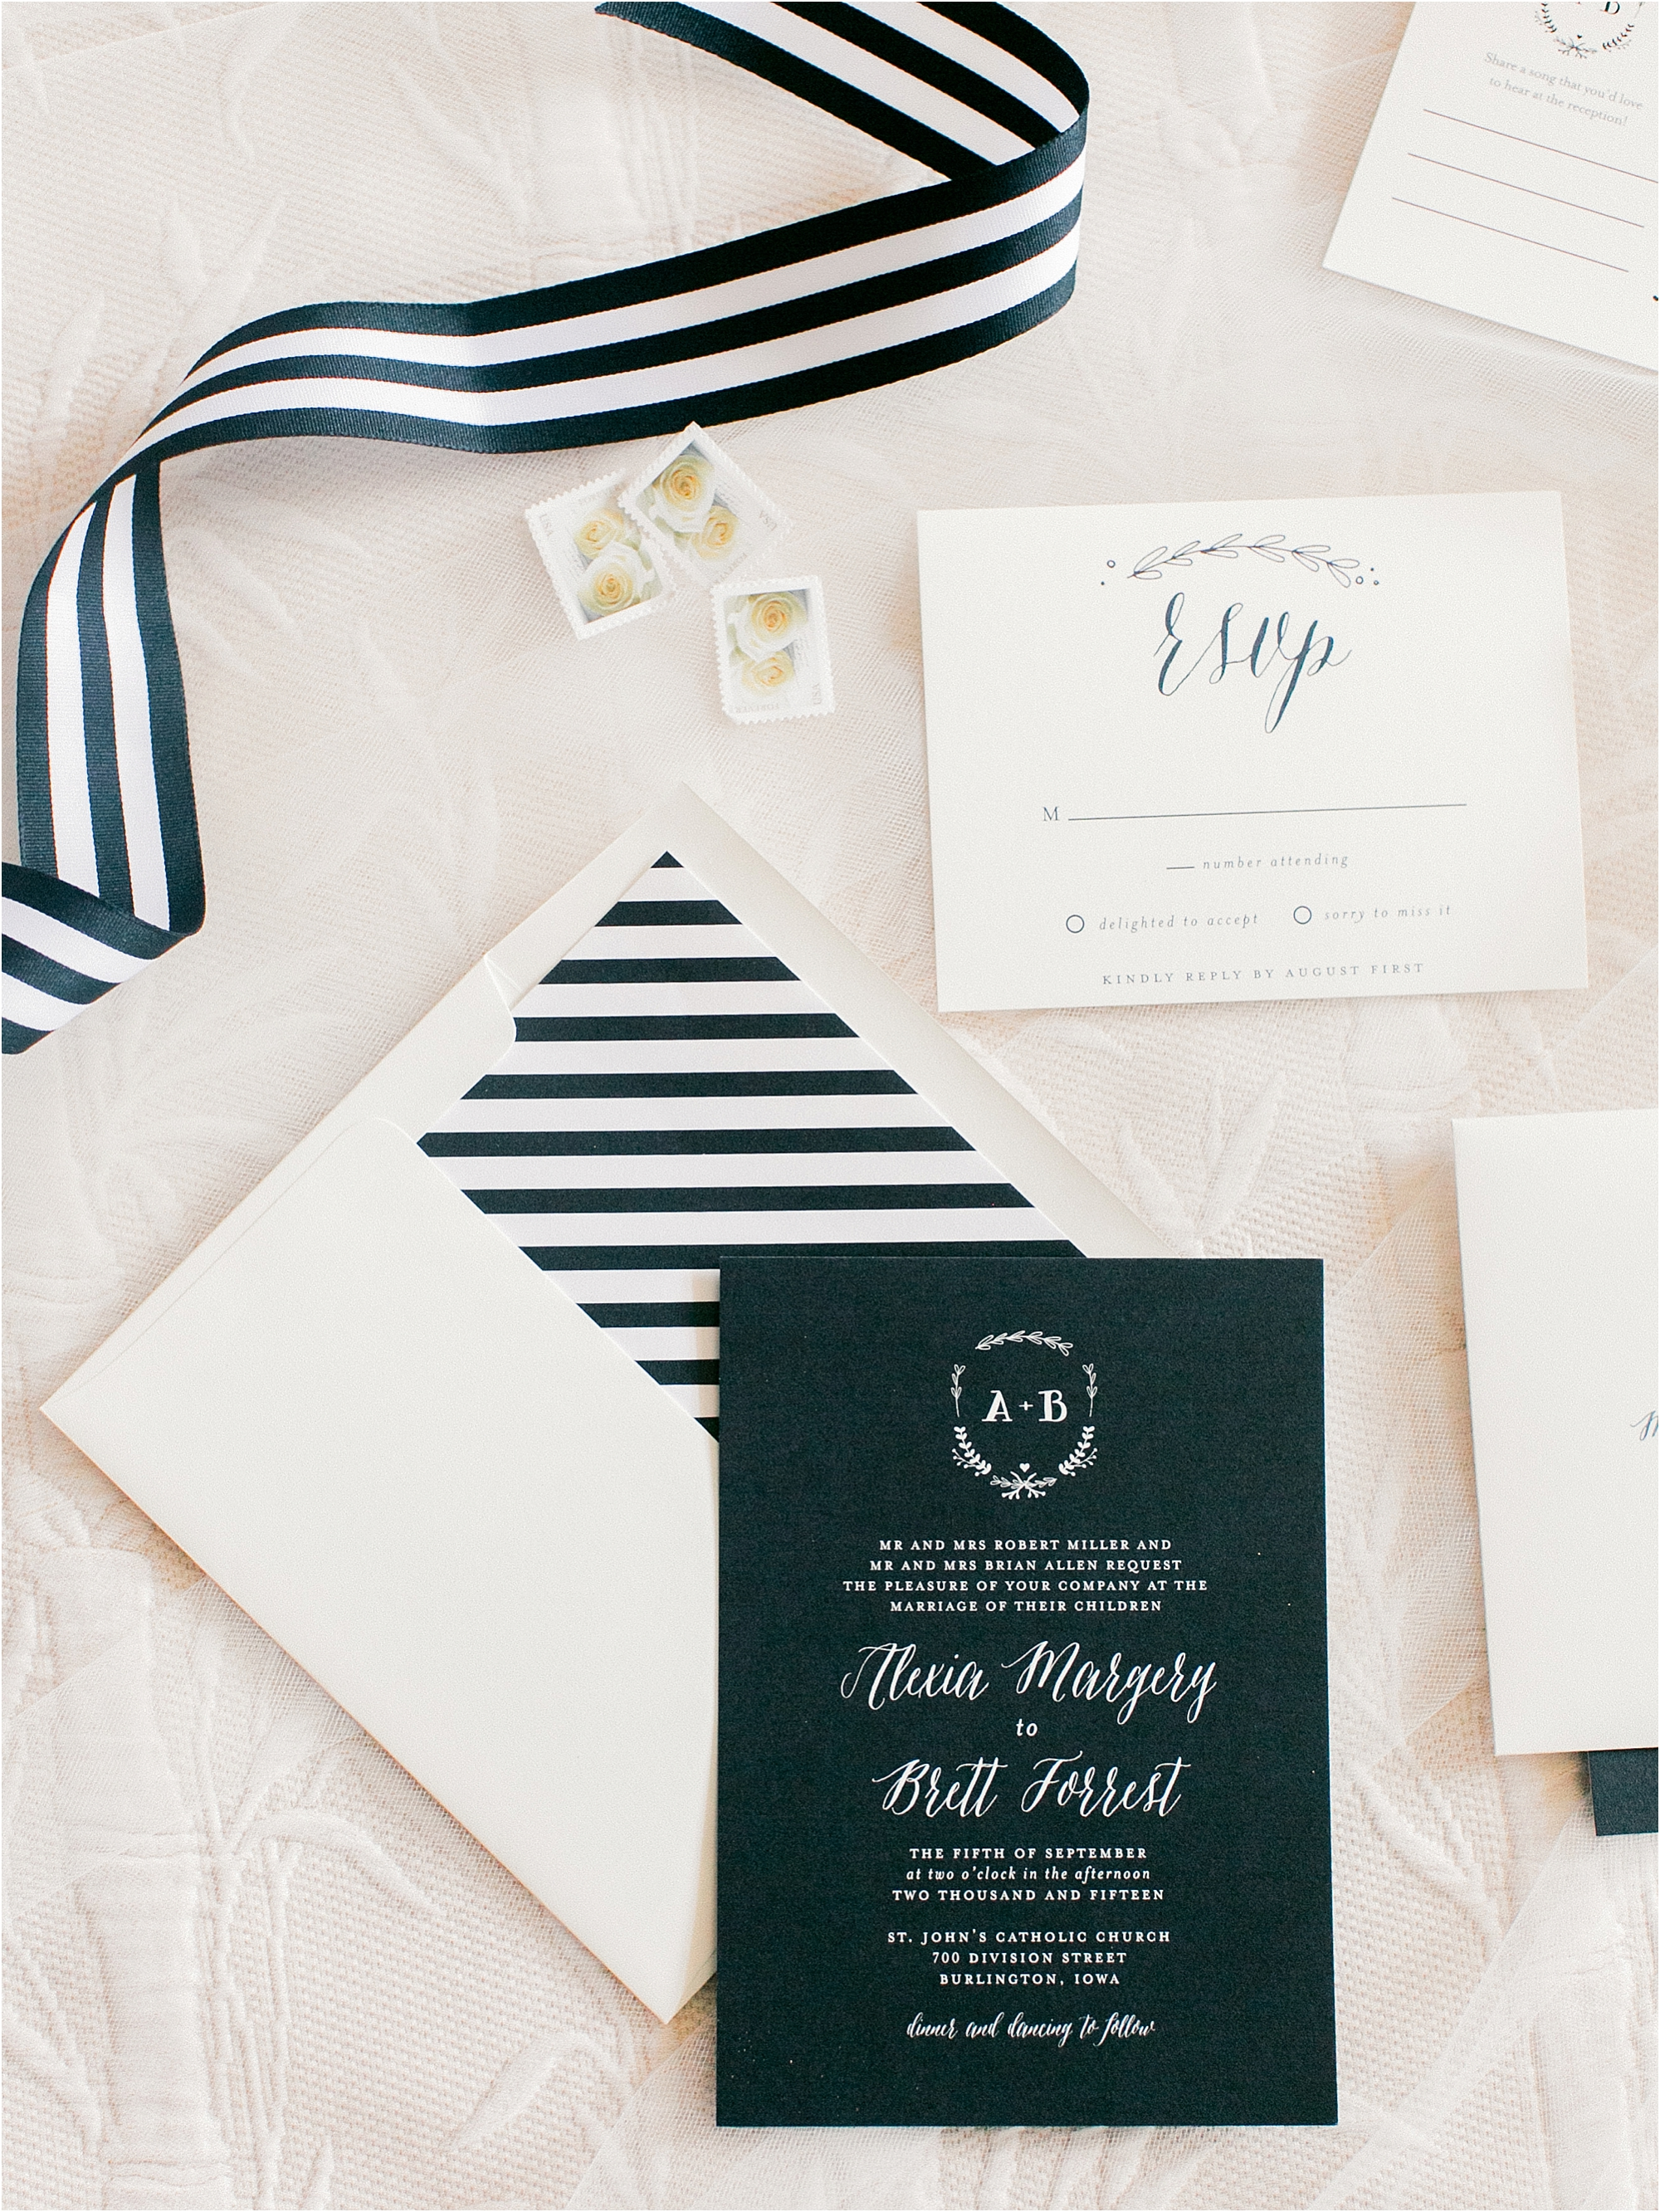 The Fine Art Process of Styling an Invitation Suite - The Jordan Brittley Blog